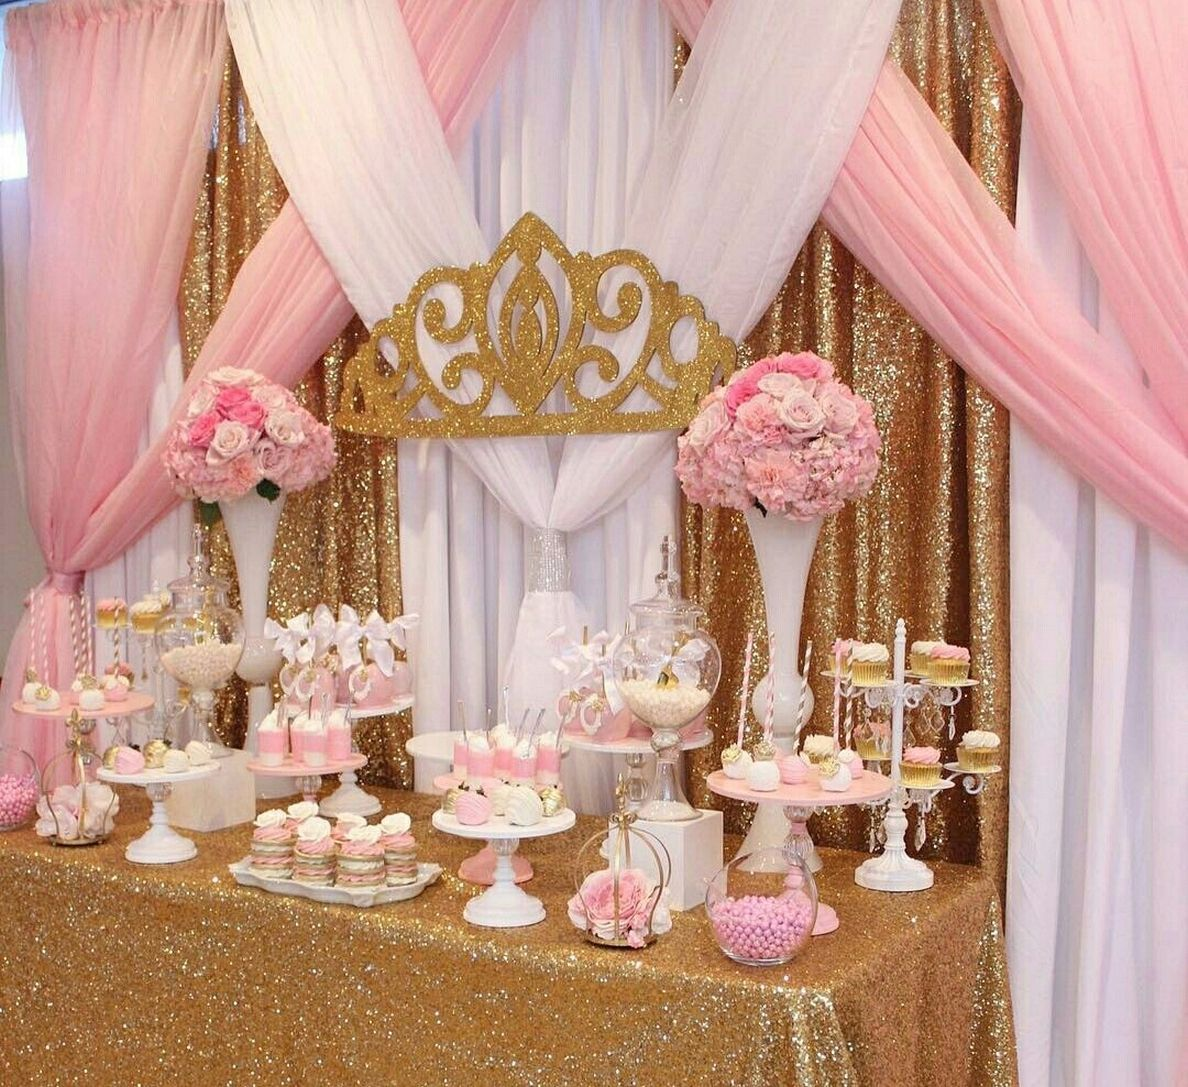 Pin by Alejandra Paredes on Princess quinceaera | Quince ...